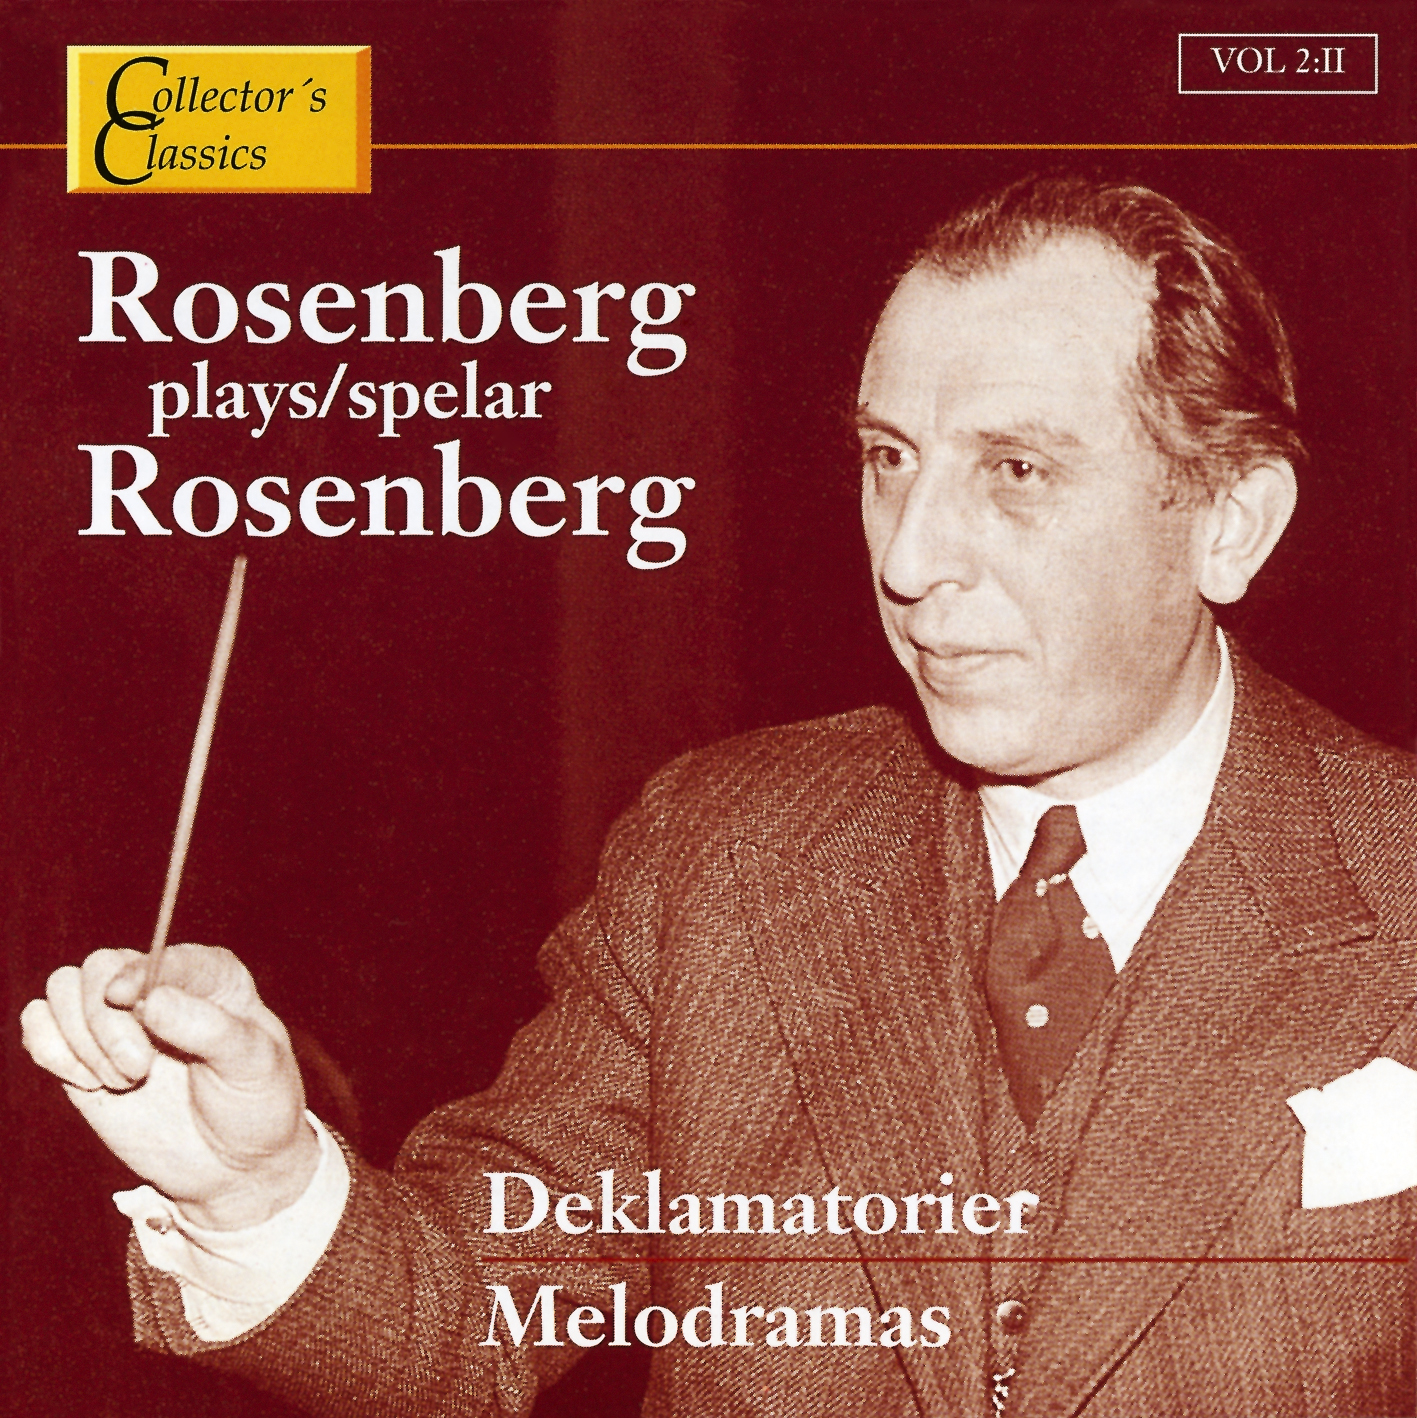 Rosenberg Vol 2:II The Meldramas CC